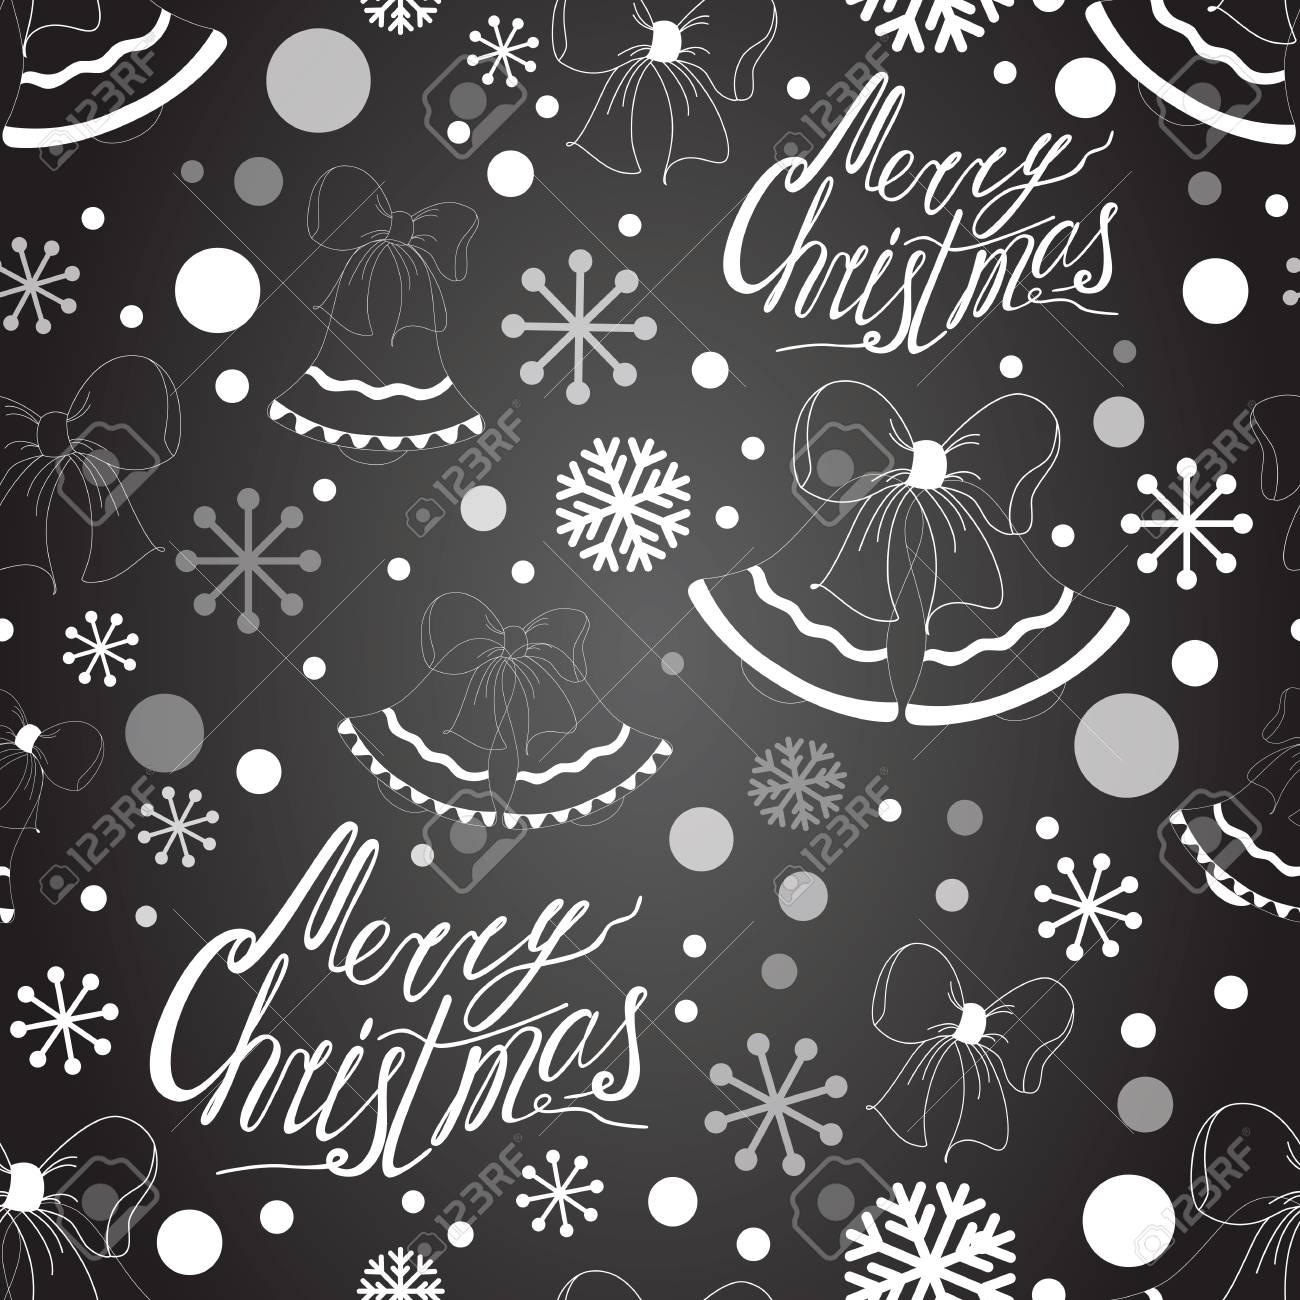 Christmas Board Design.Merry Christmas Seamless Pattern On The Black Chalk Board With